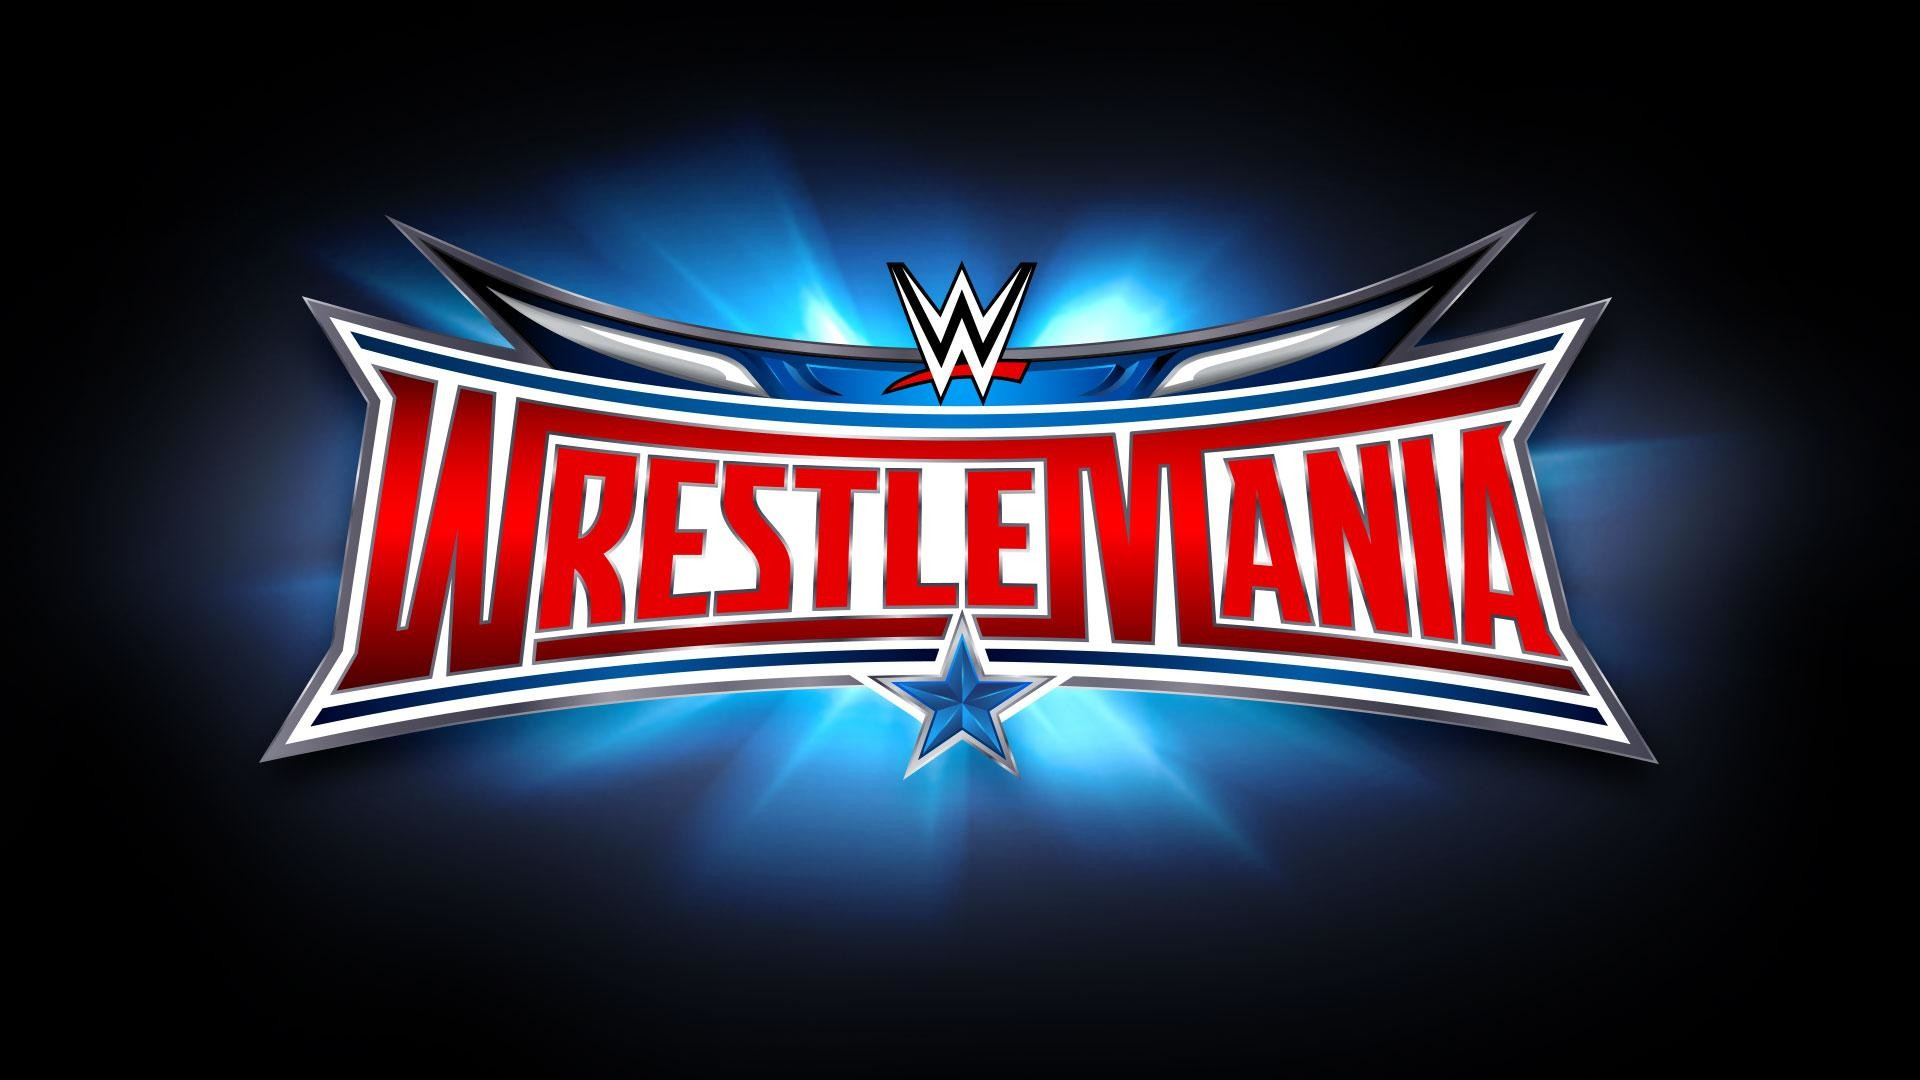 1920x1080  Wallpaper wwe, wrestlemania 32, wrestlemania